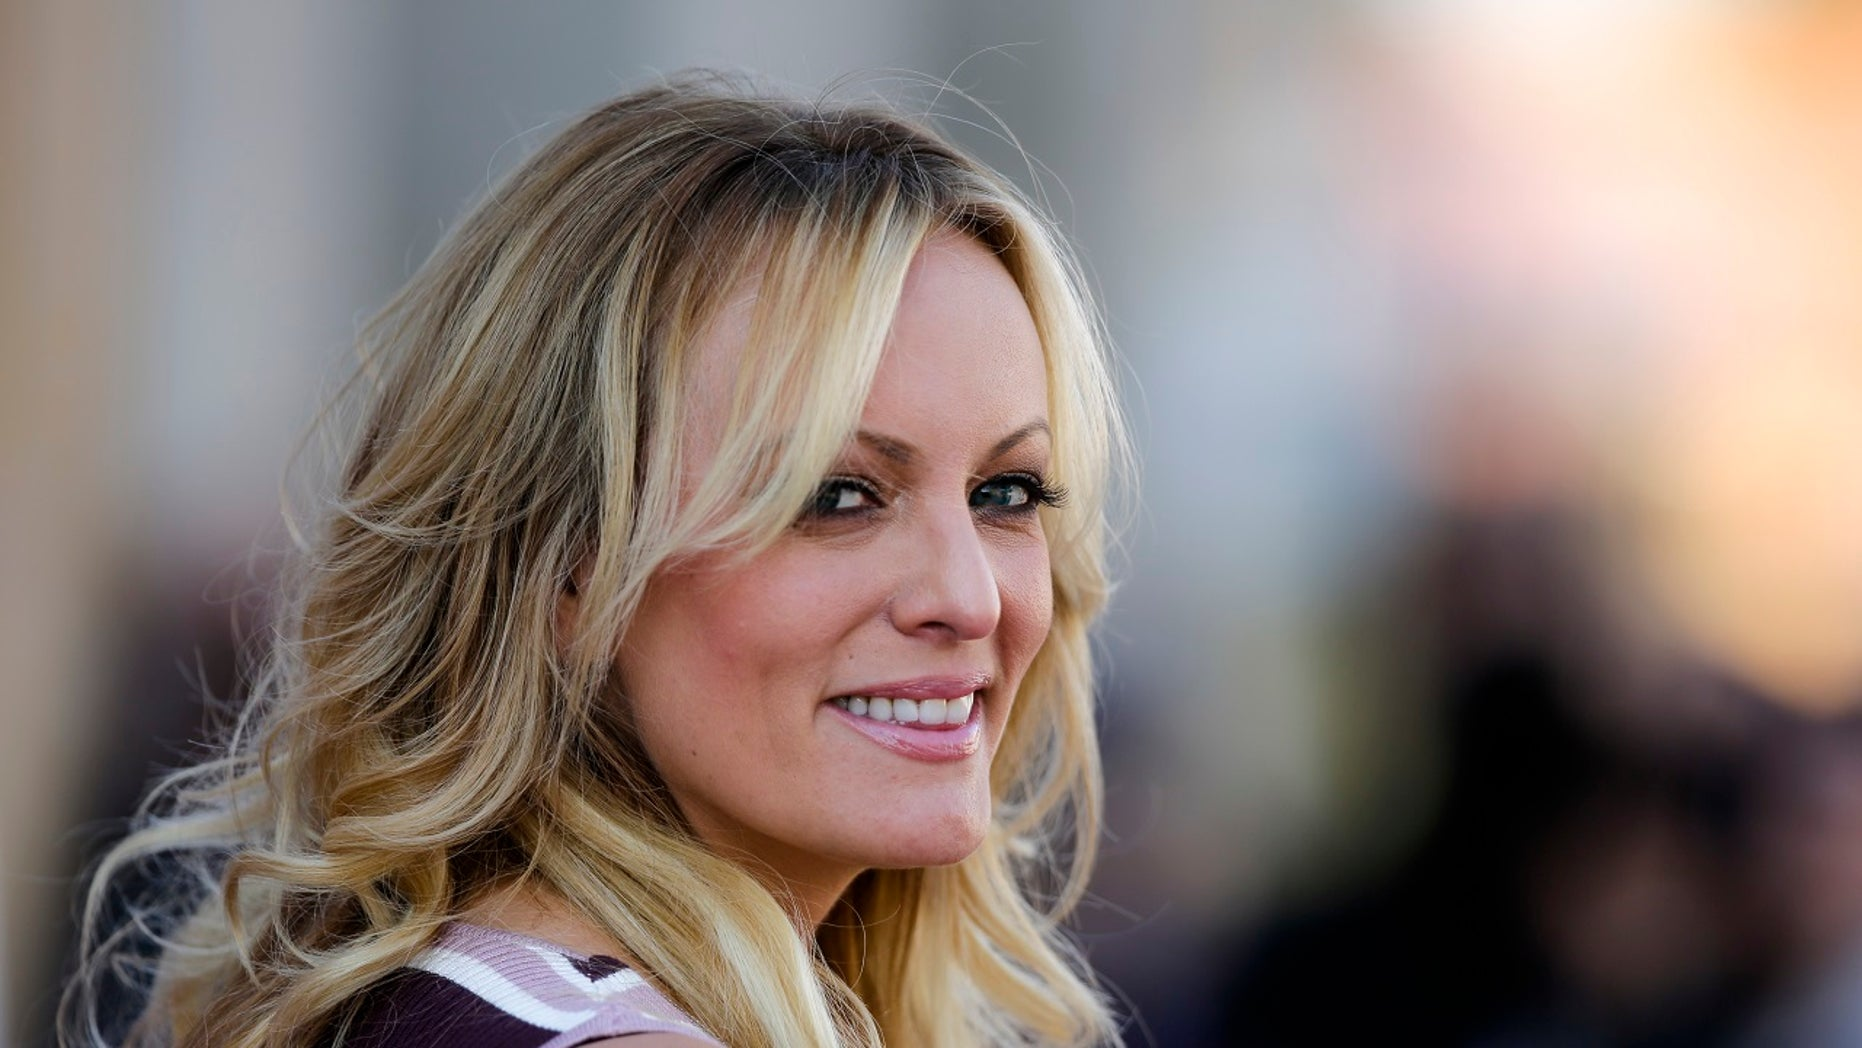 Stormy Daniels took to Twitter to express her anger after Aer Lingus reportedly lost her luggage.